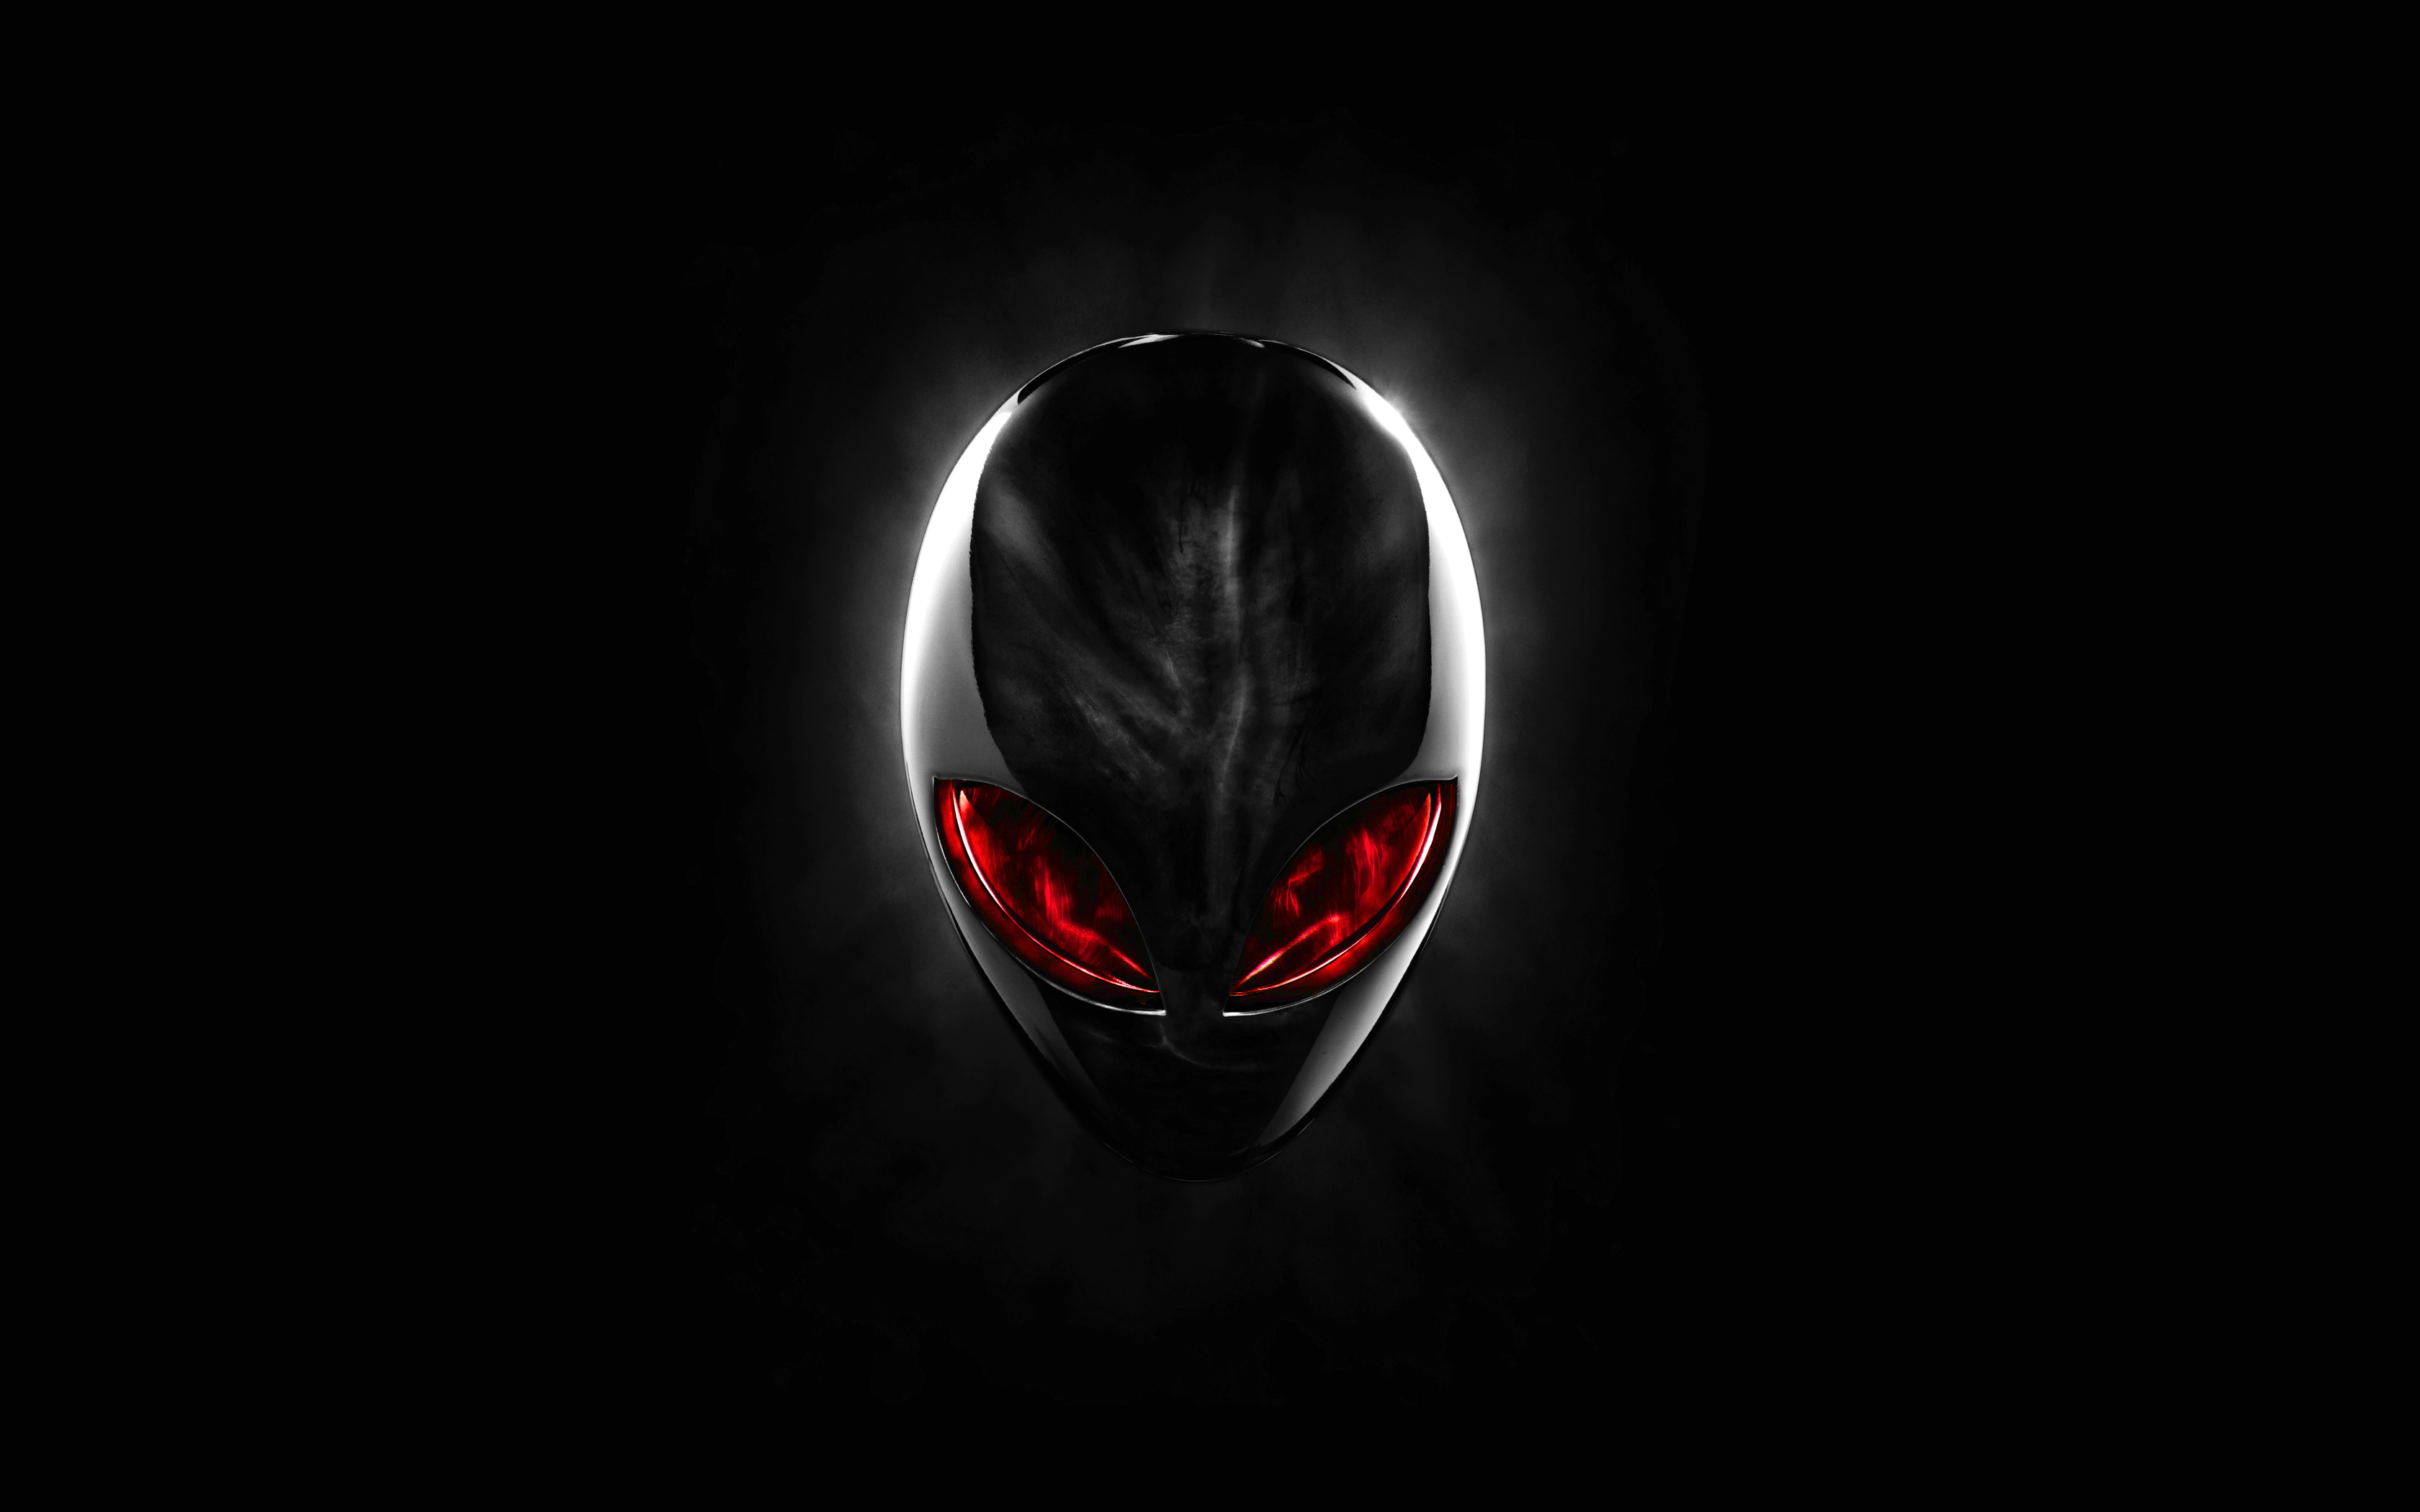 3360x2100 125 Alienware HD Wallpapers | Background Images - Wallpaper Abyss